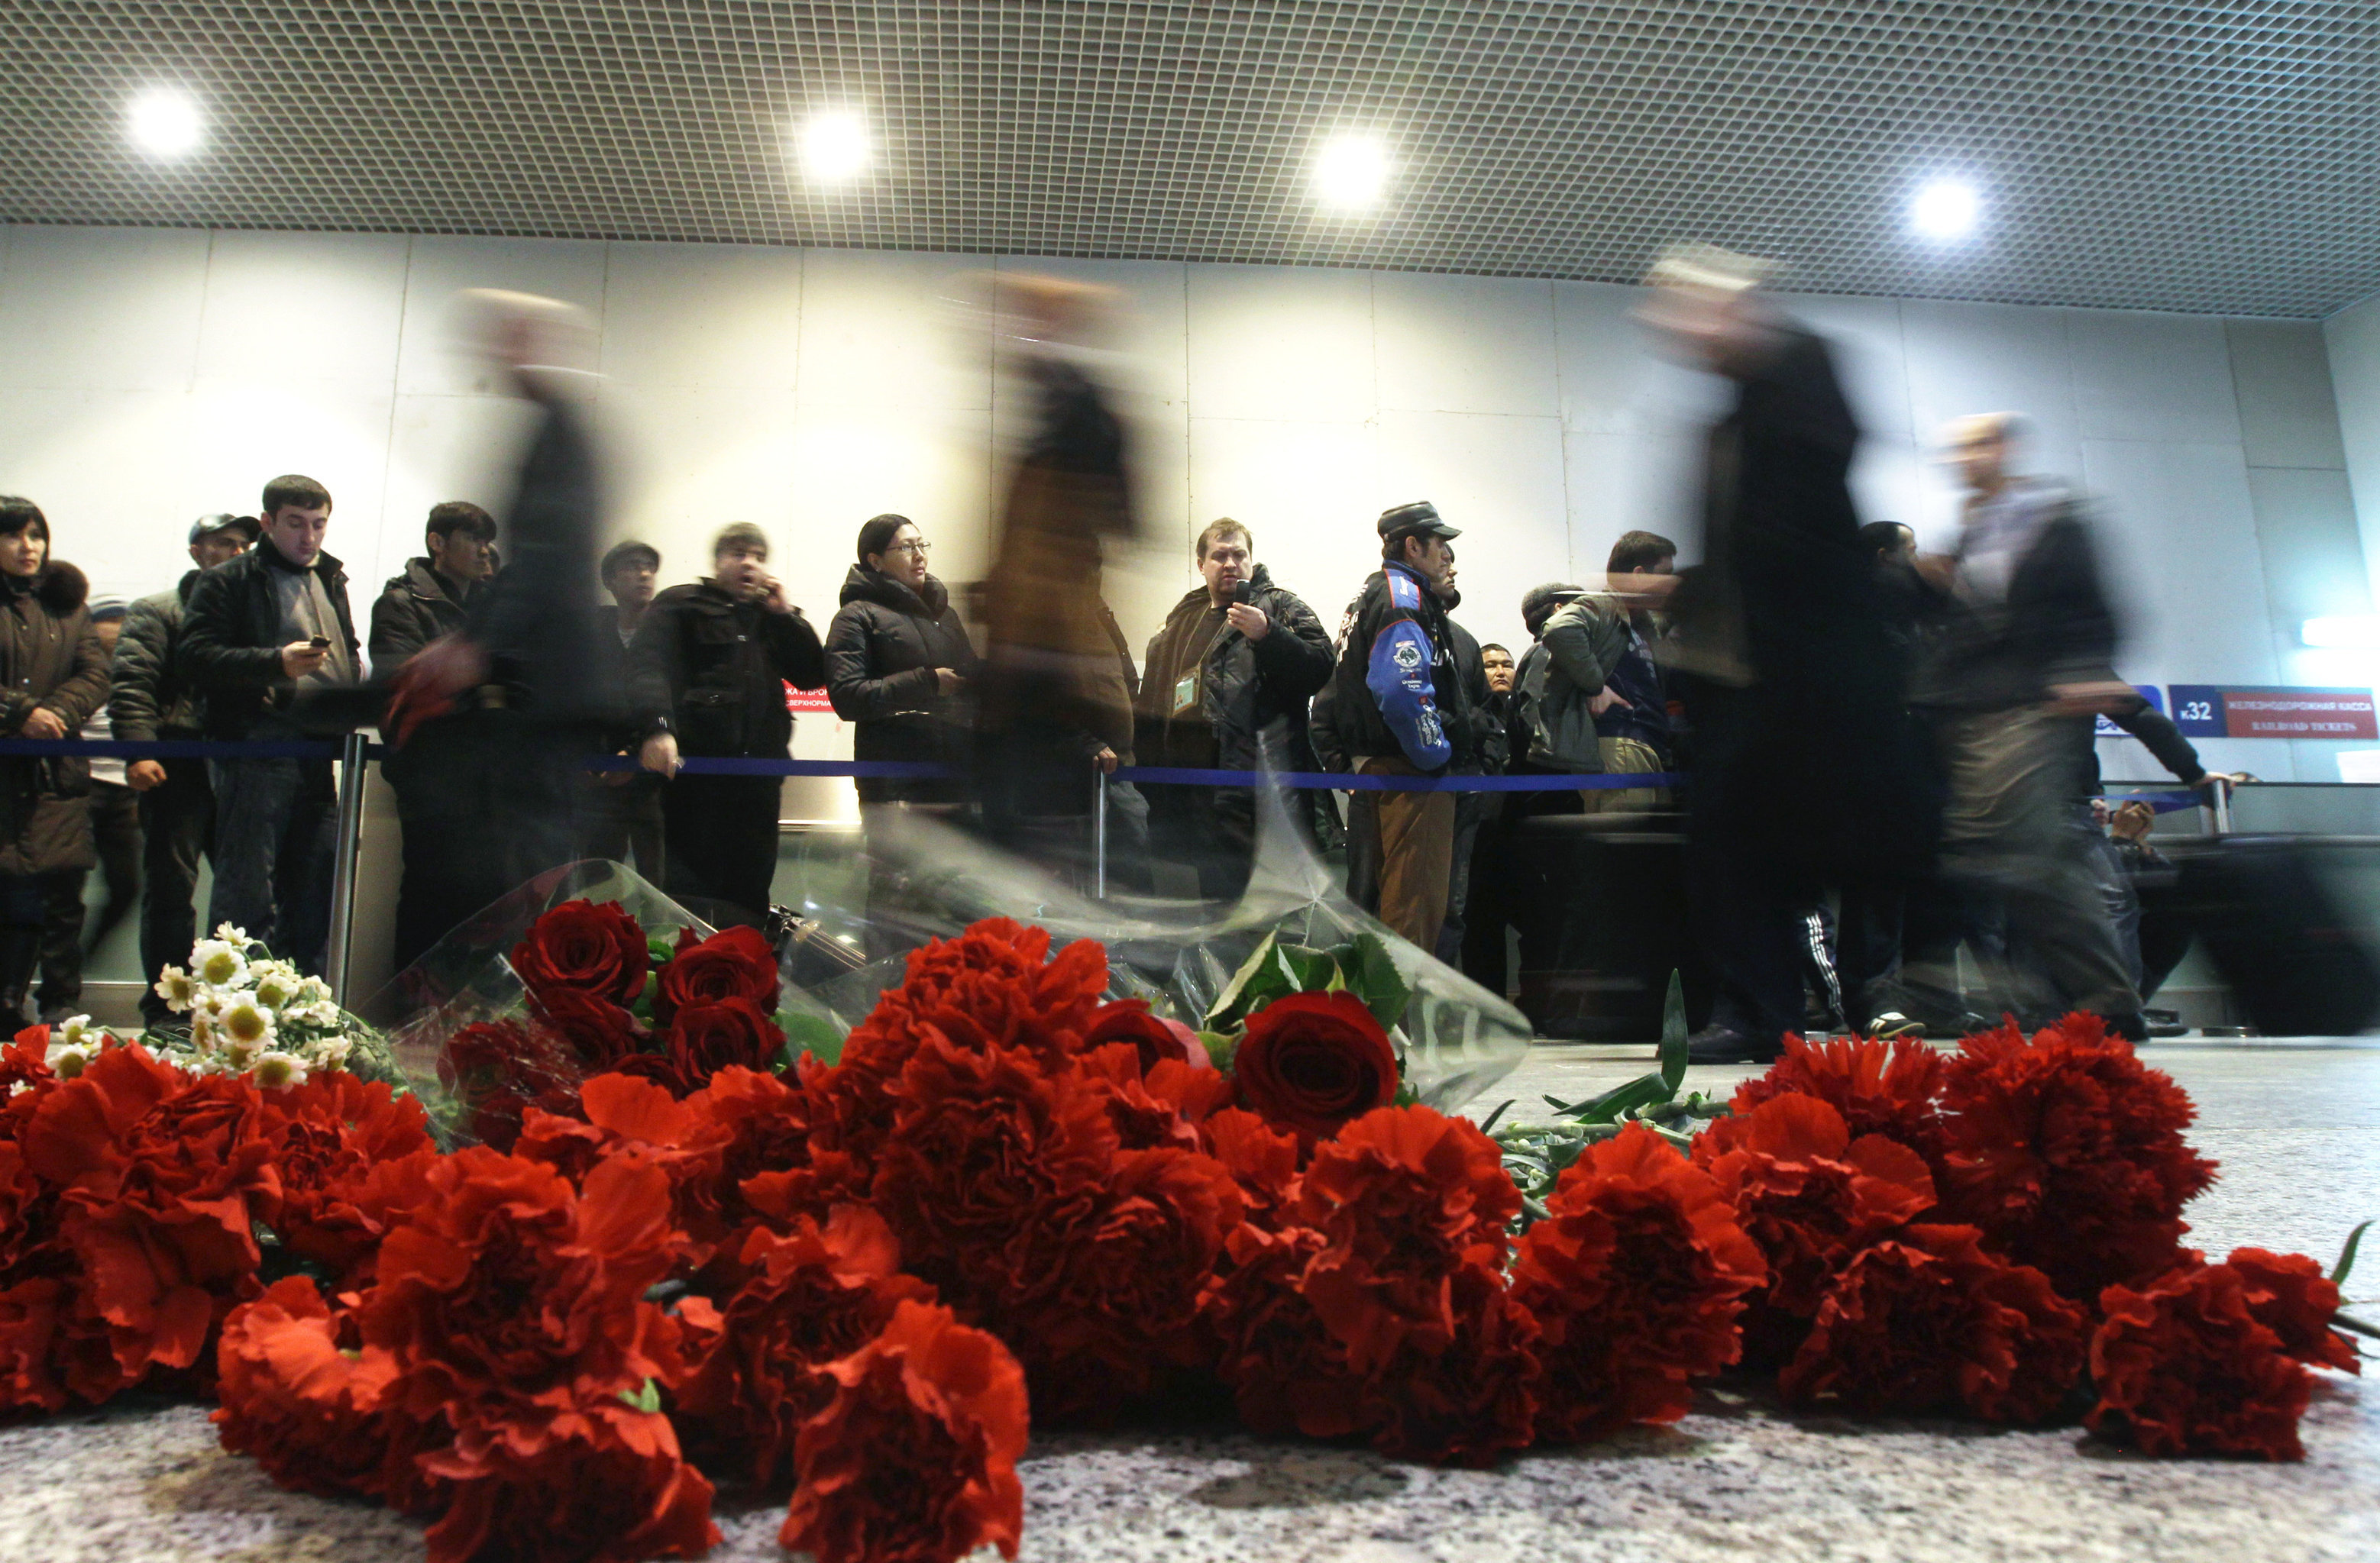 Flowers in the Domodedovo arrival lounge to commemorate the victims of the act of terrorism on January 24. (File)